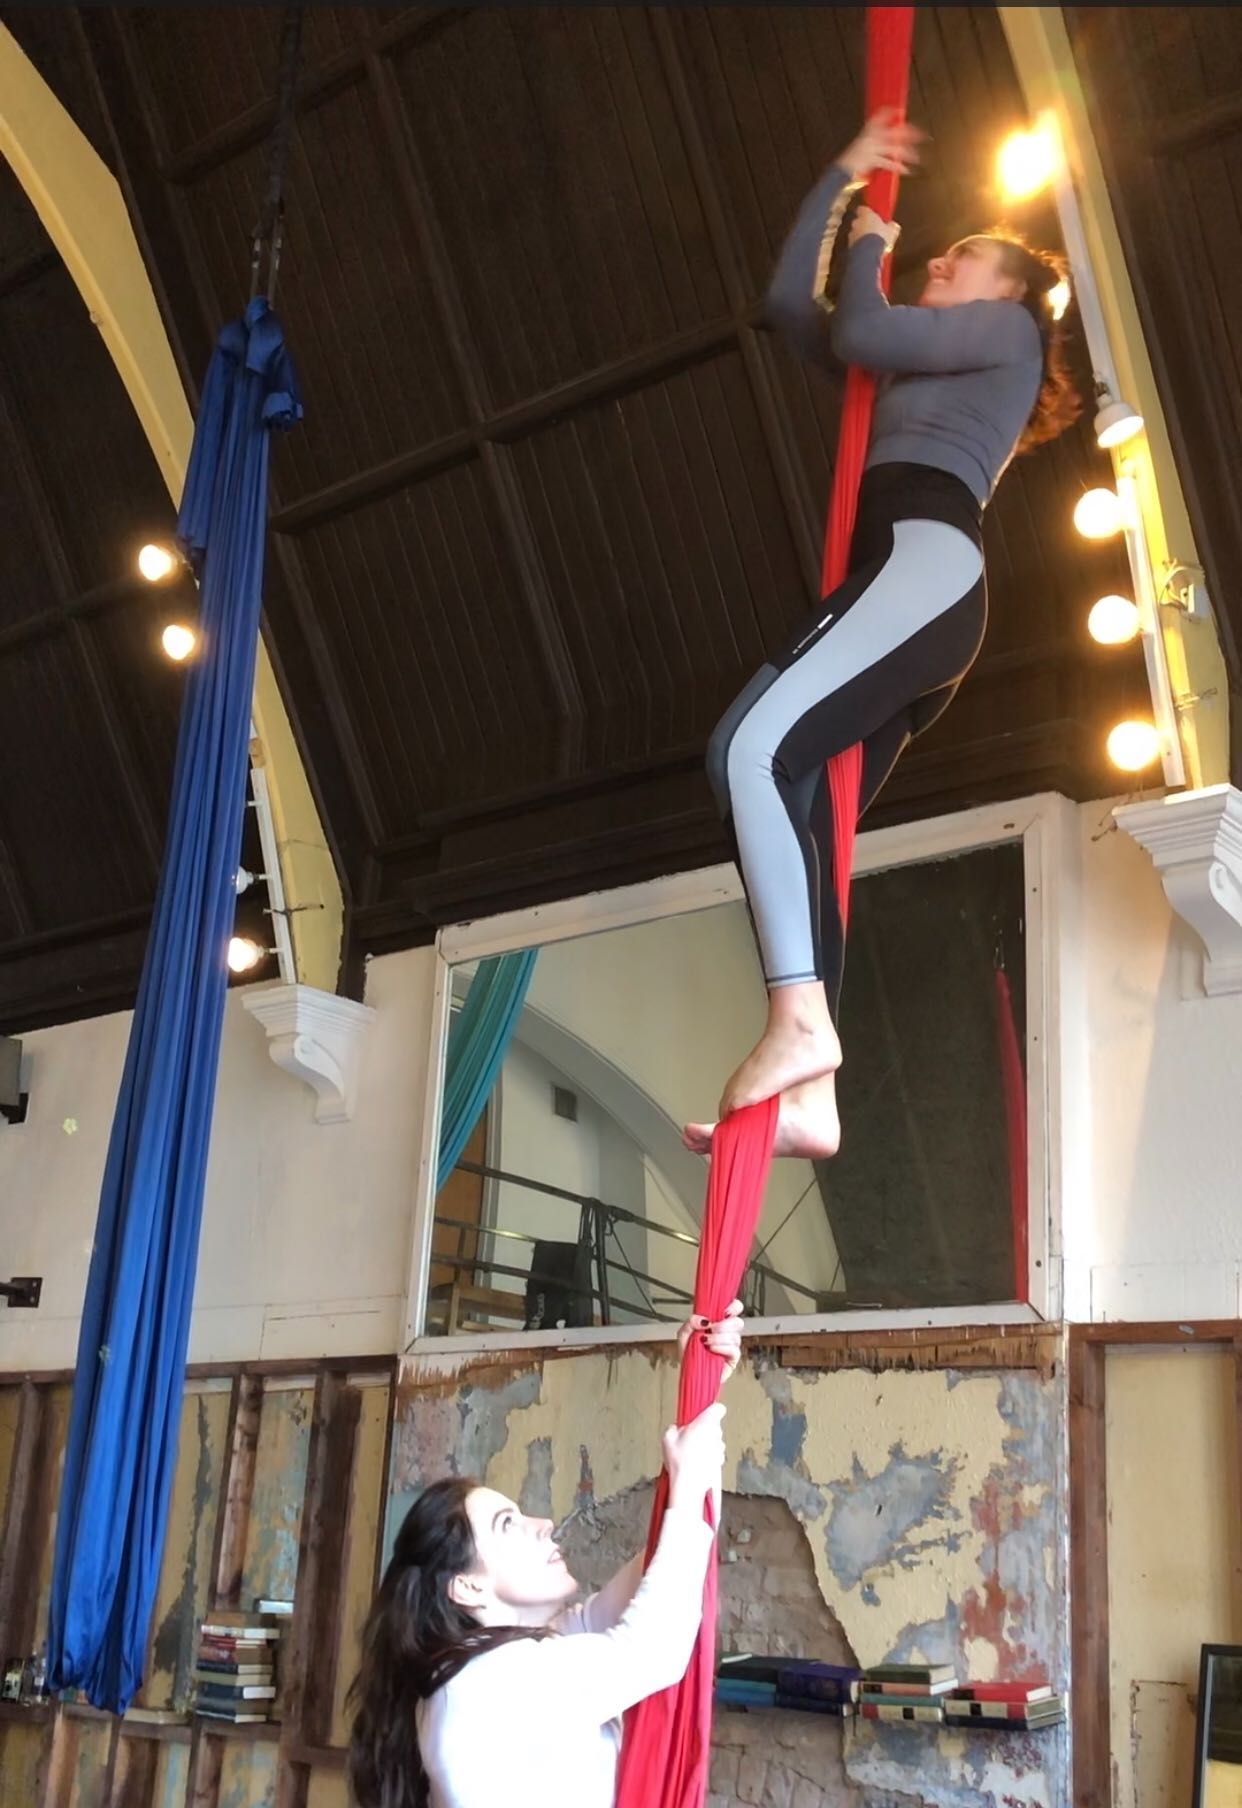 saoirse trying aerial cirque in Dublin